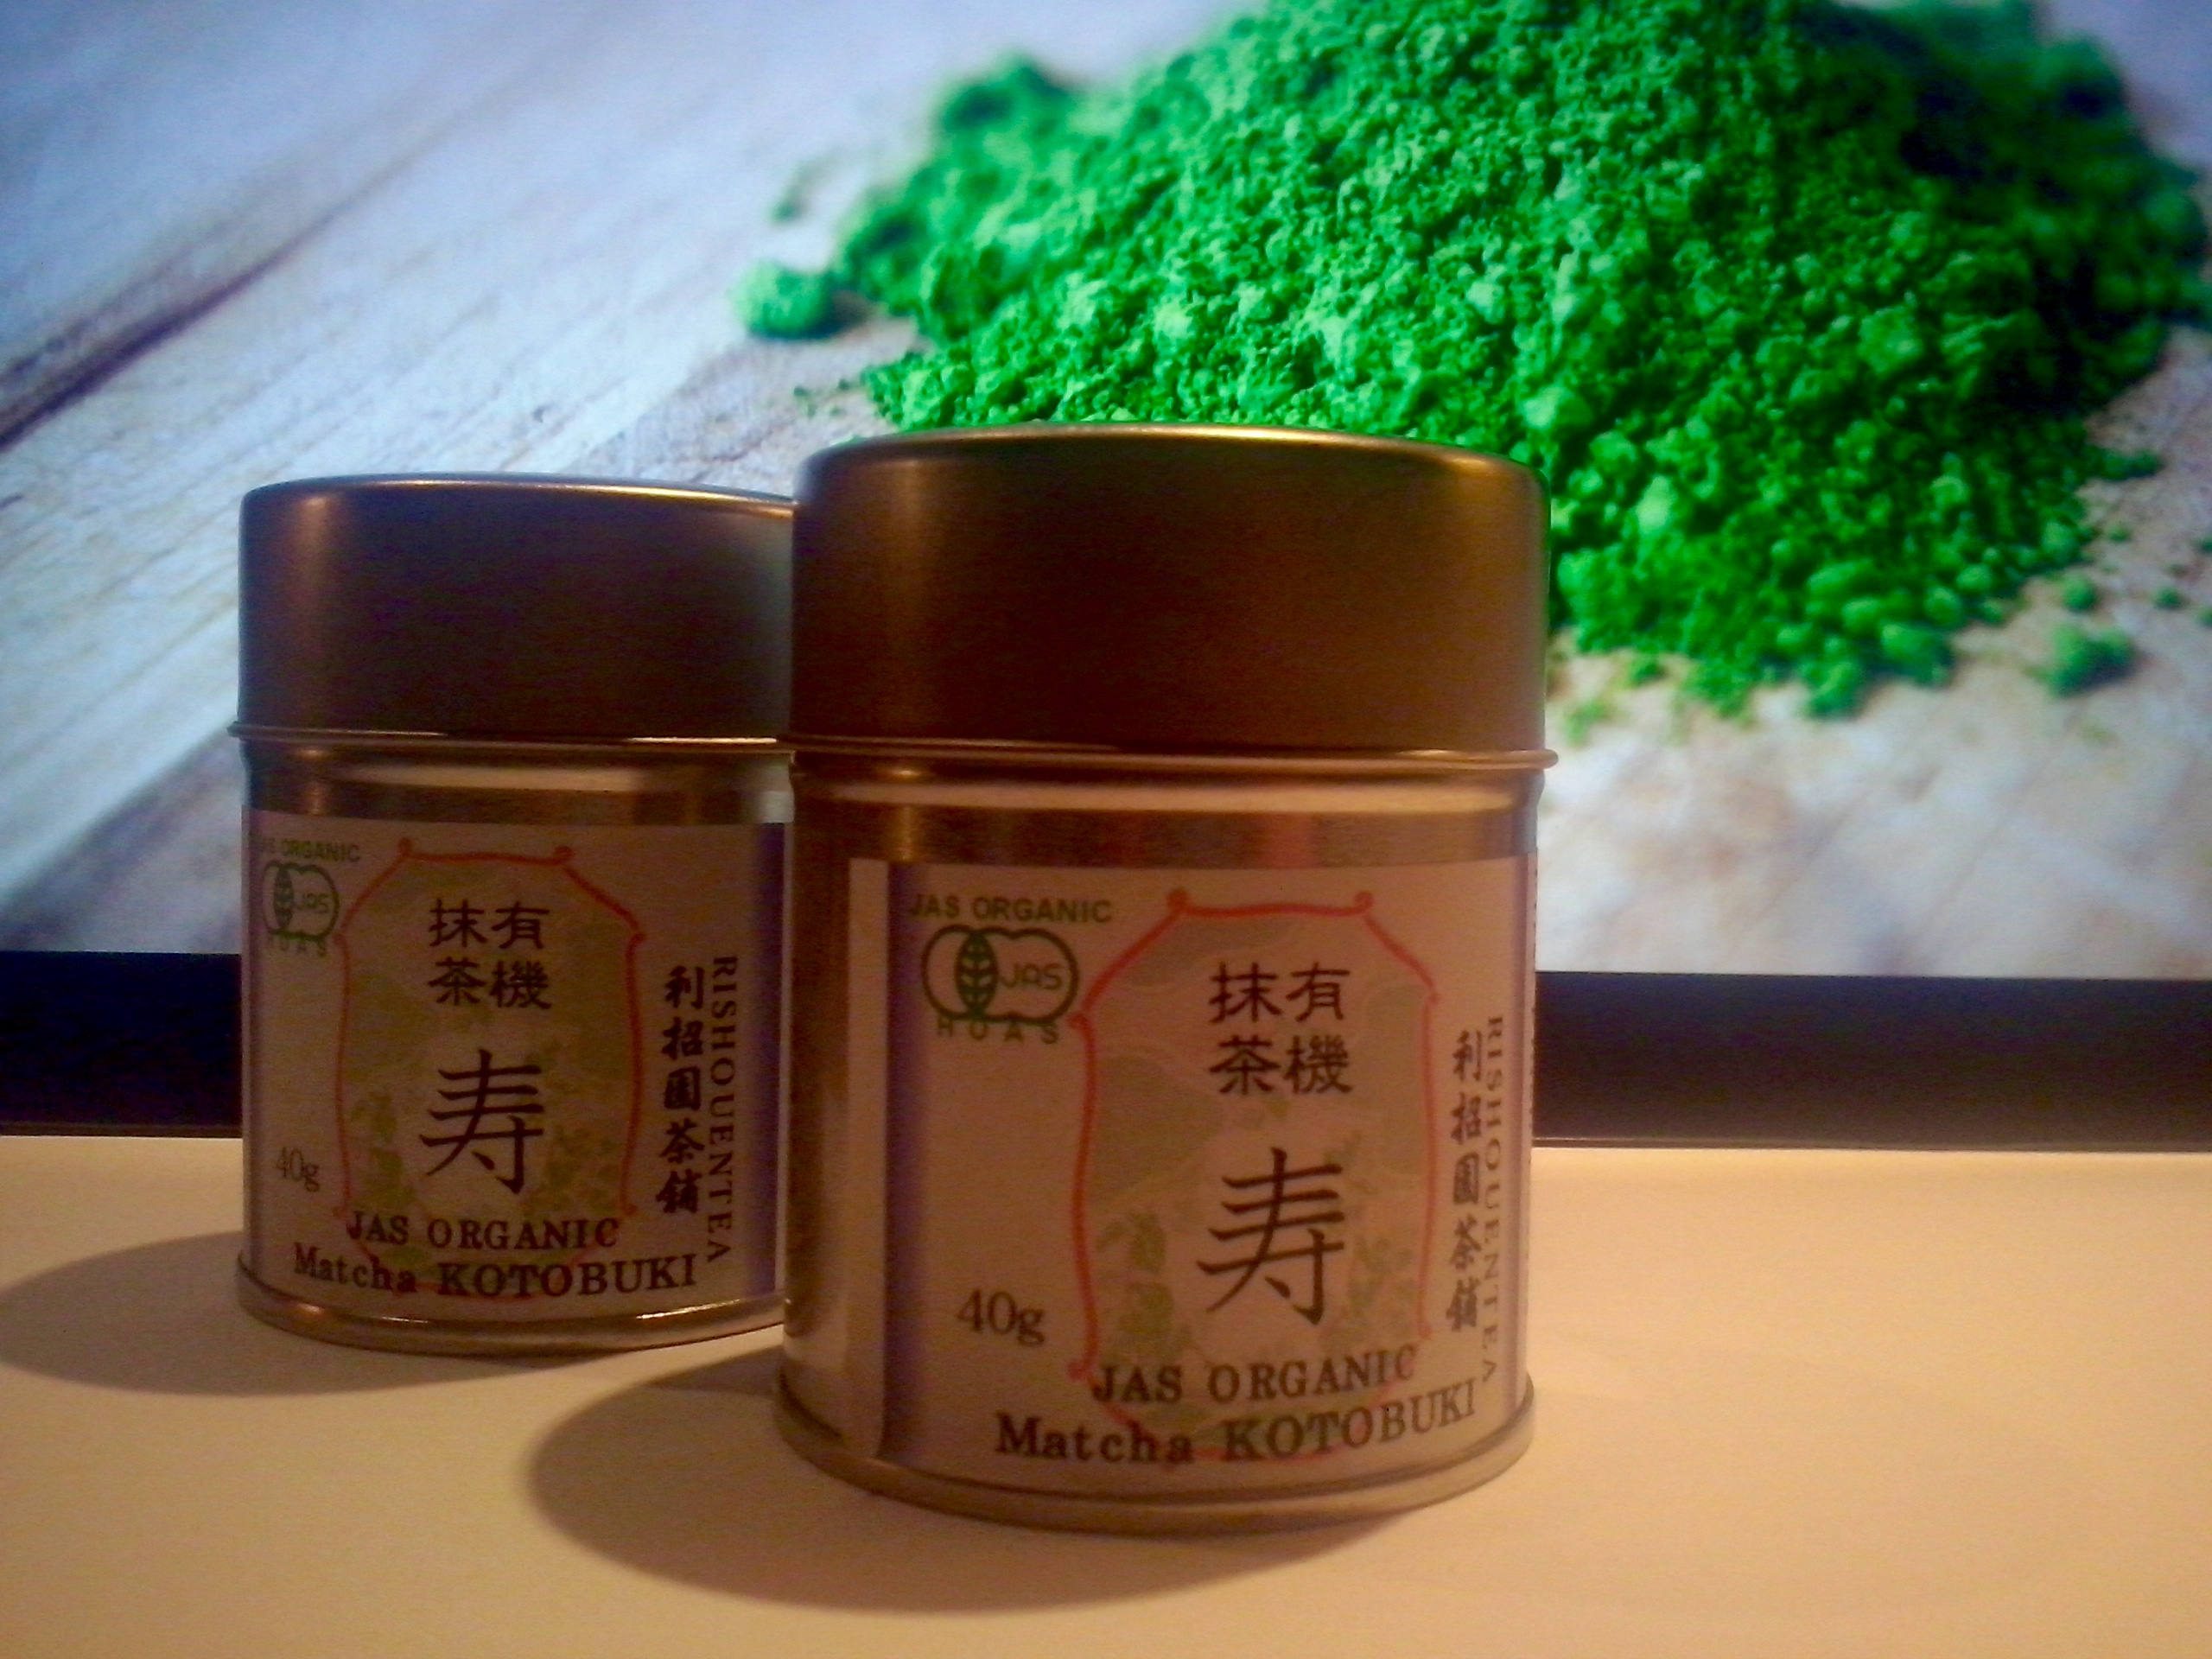 the matcha kotobuki